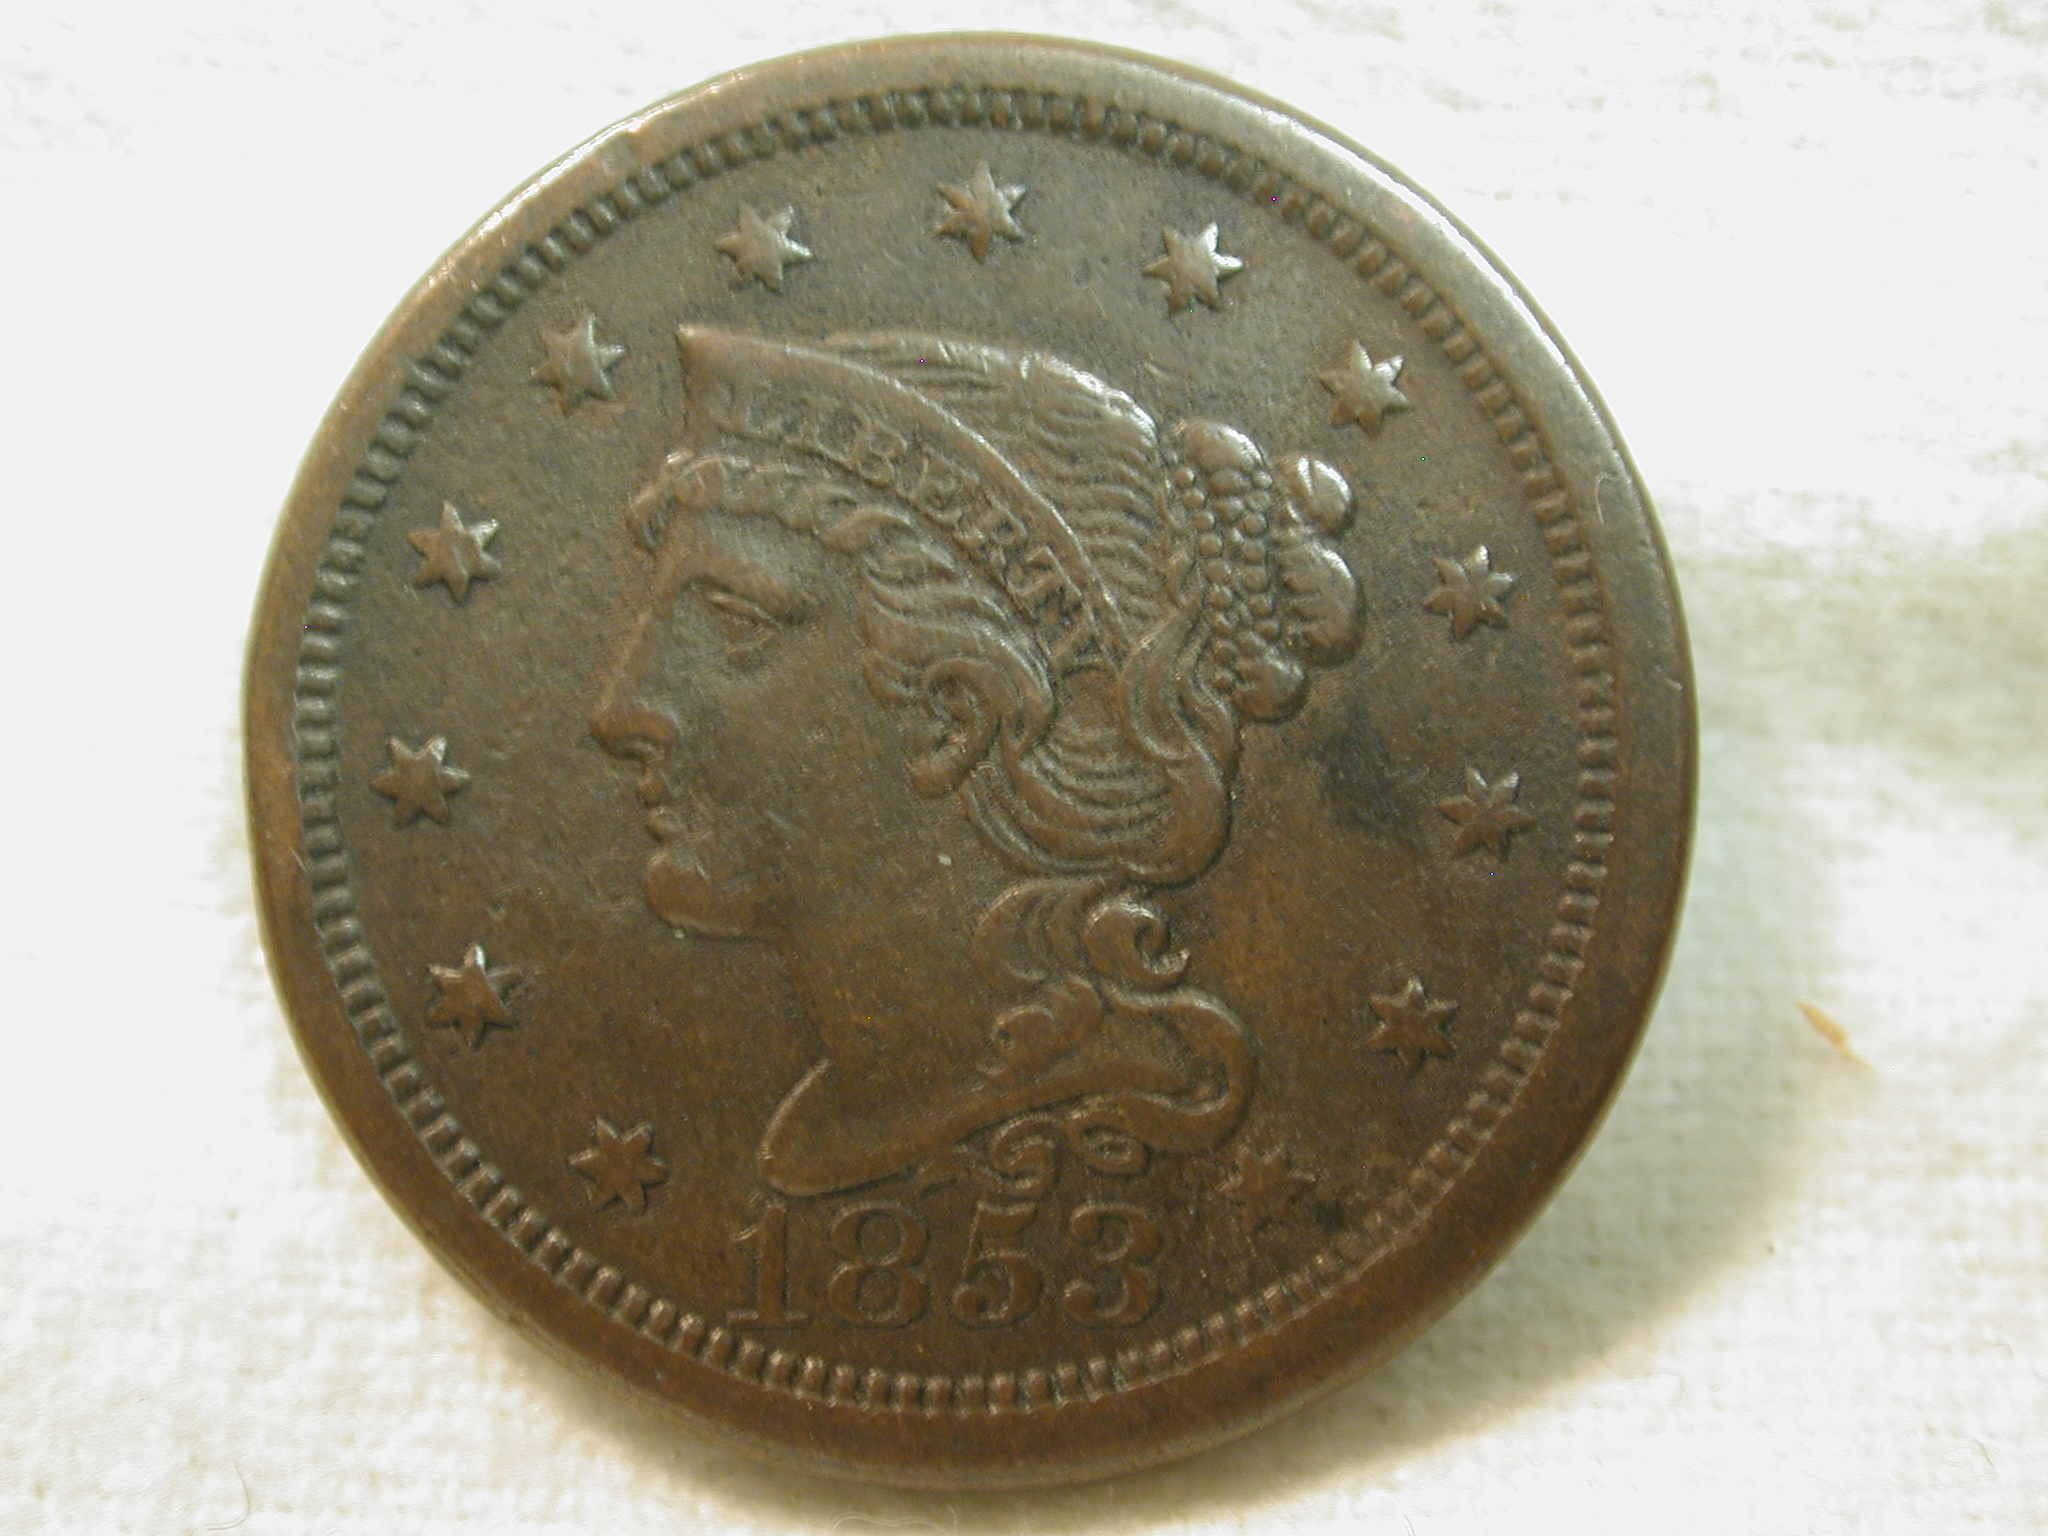 1853 U.S. Large Cent Modified Portrait Braided Hair (Environmental Damage) Extremely Fine